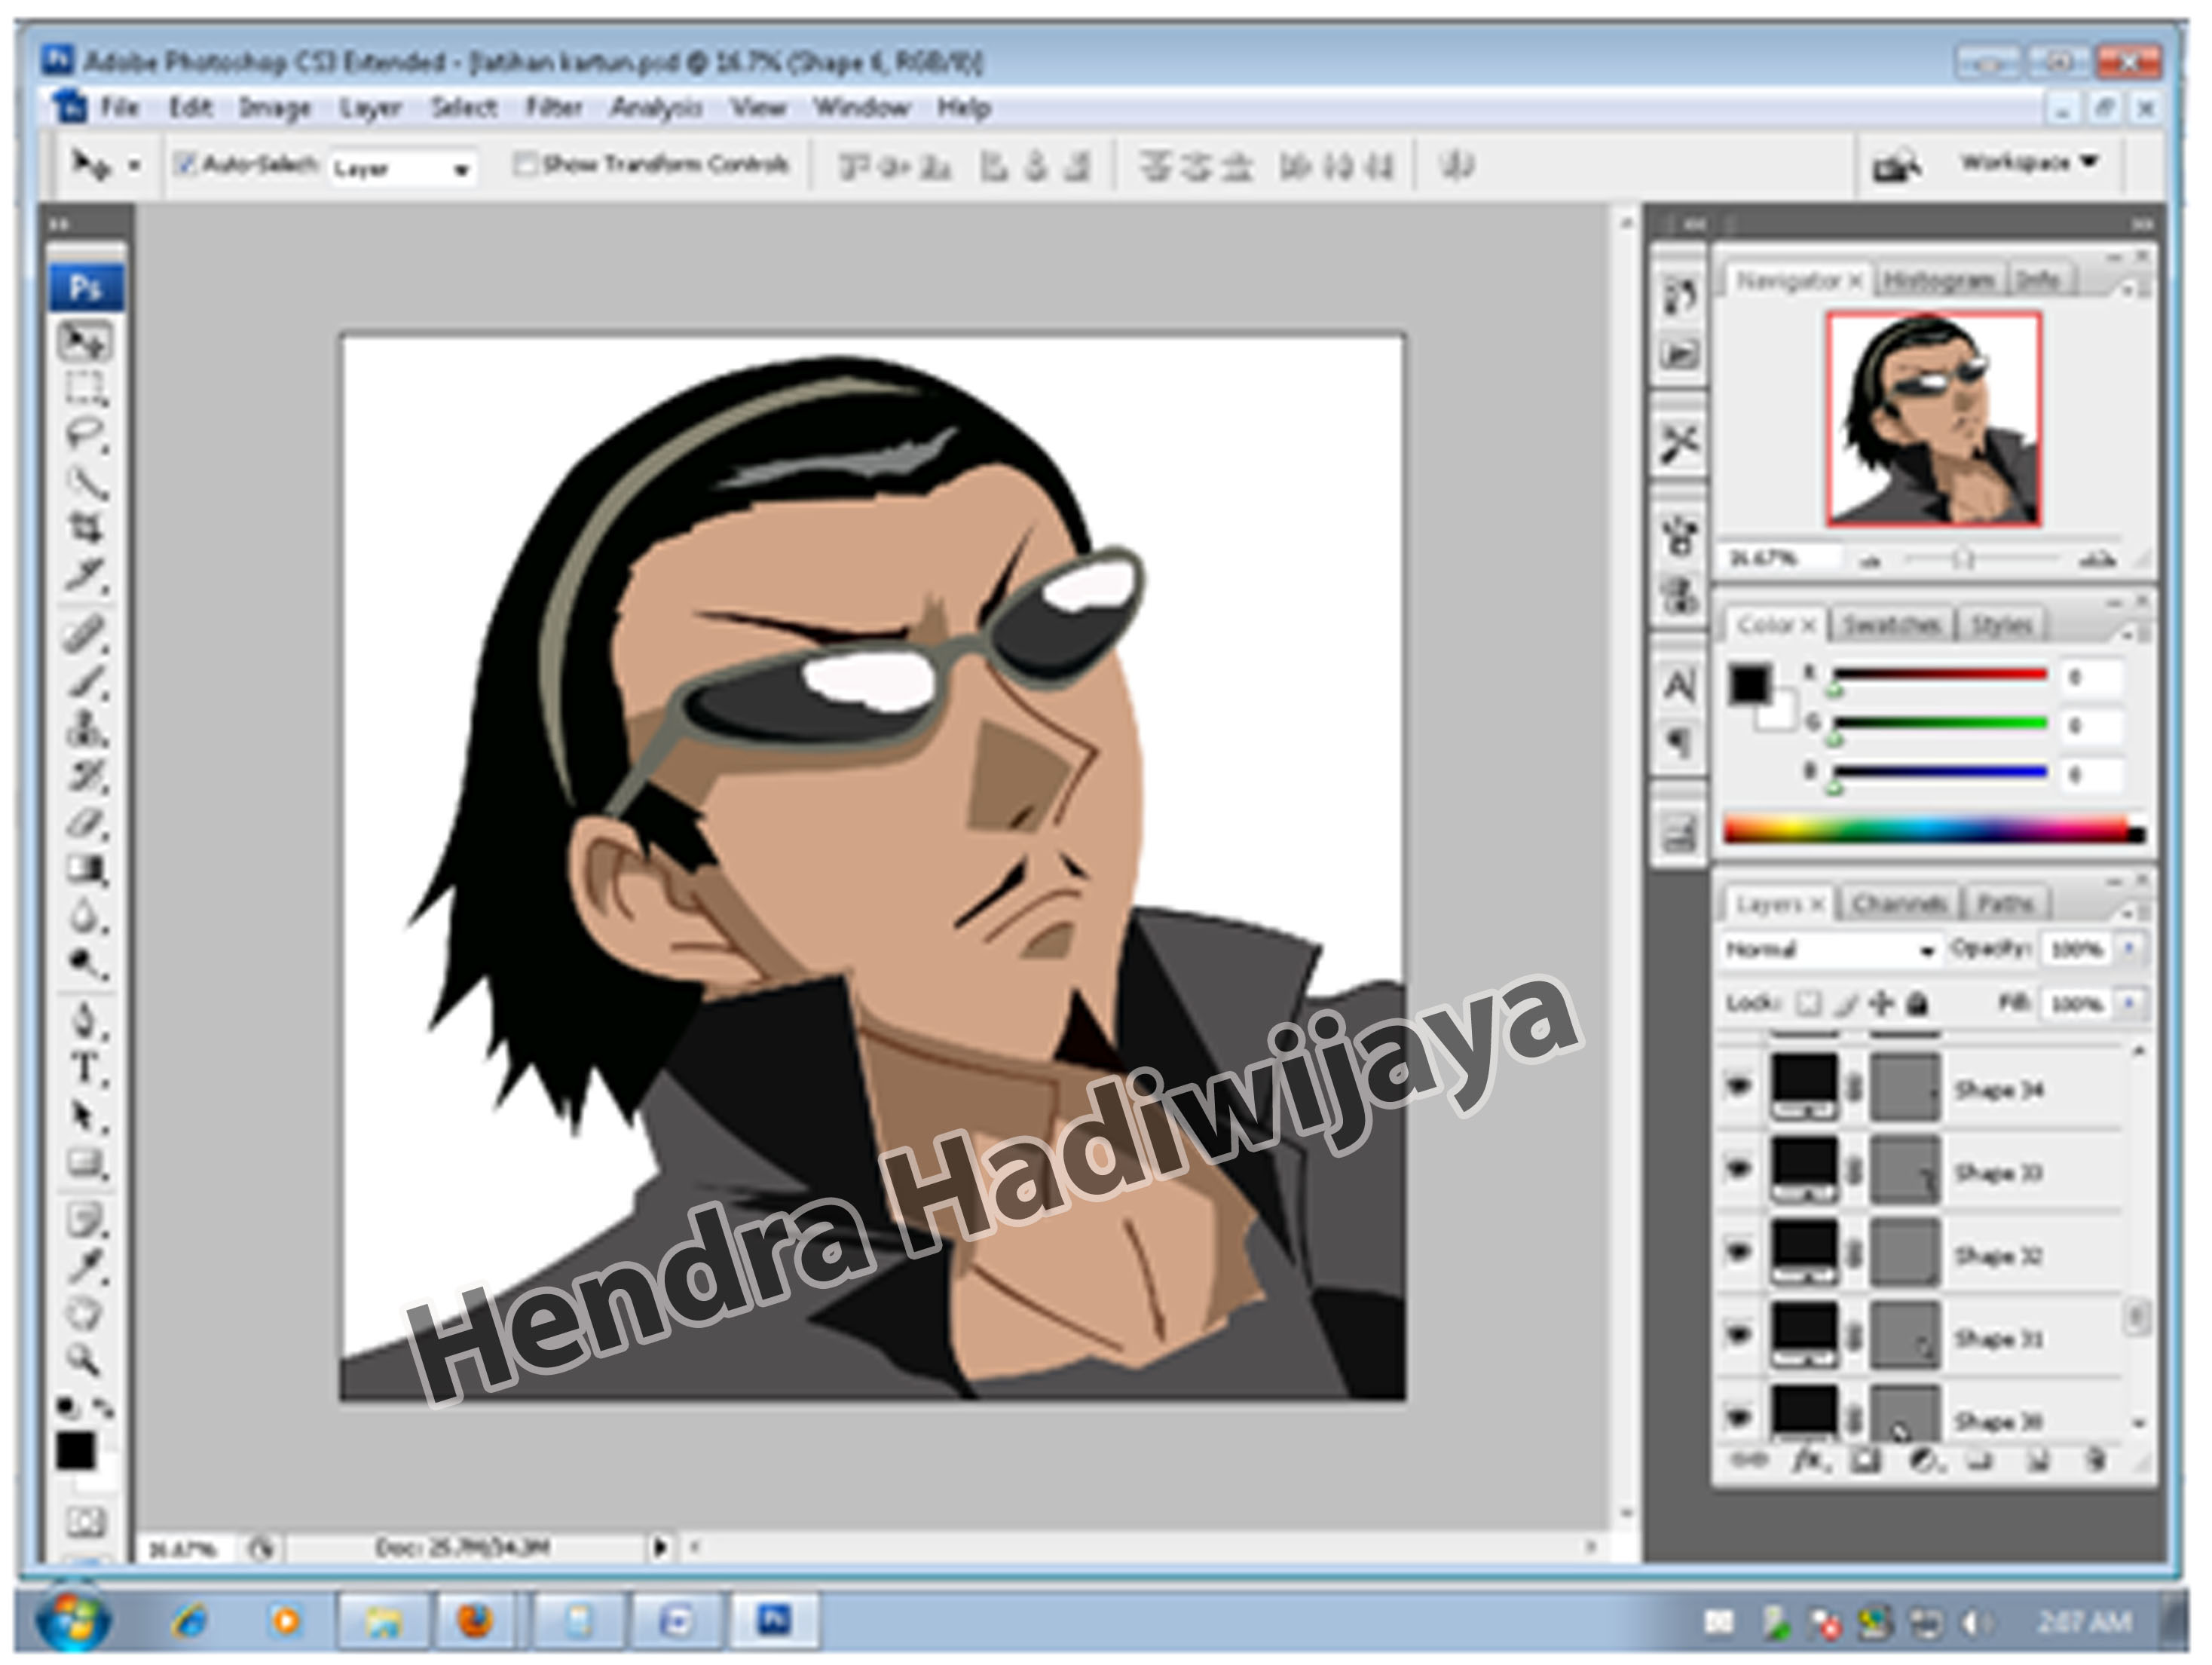 Membuat Kartun dari Program Adobe Phtoshop